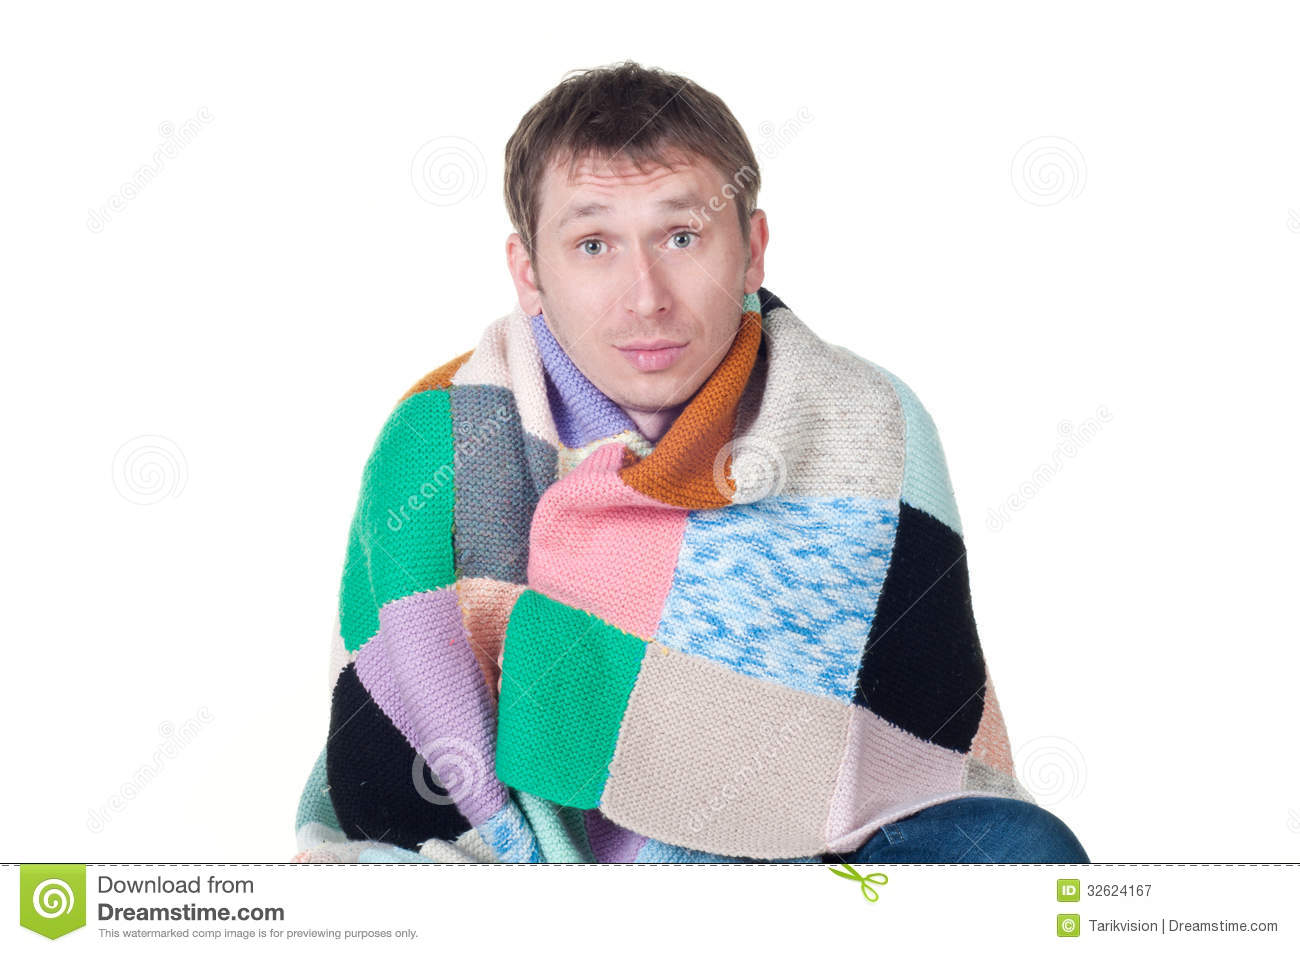 warm blanket clipart. royaltyfree stock photo warm blanket clipart m